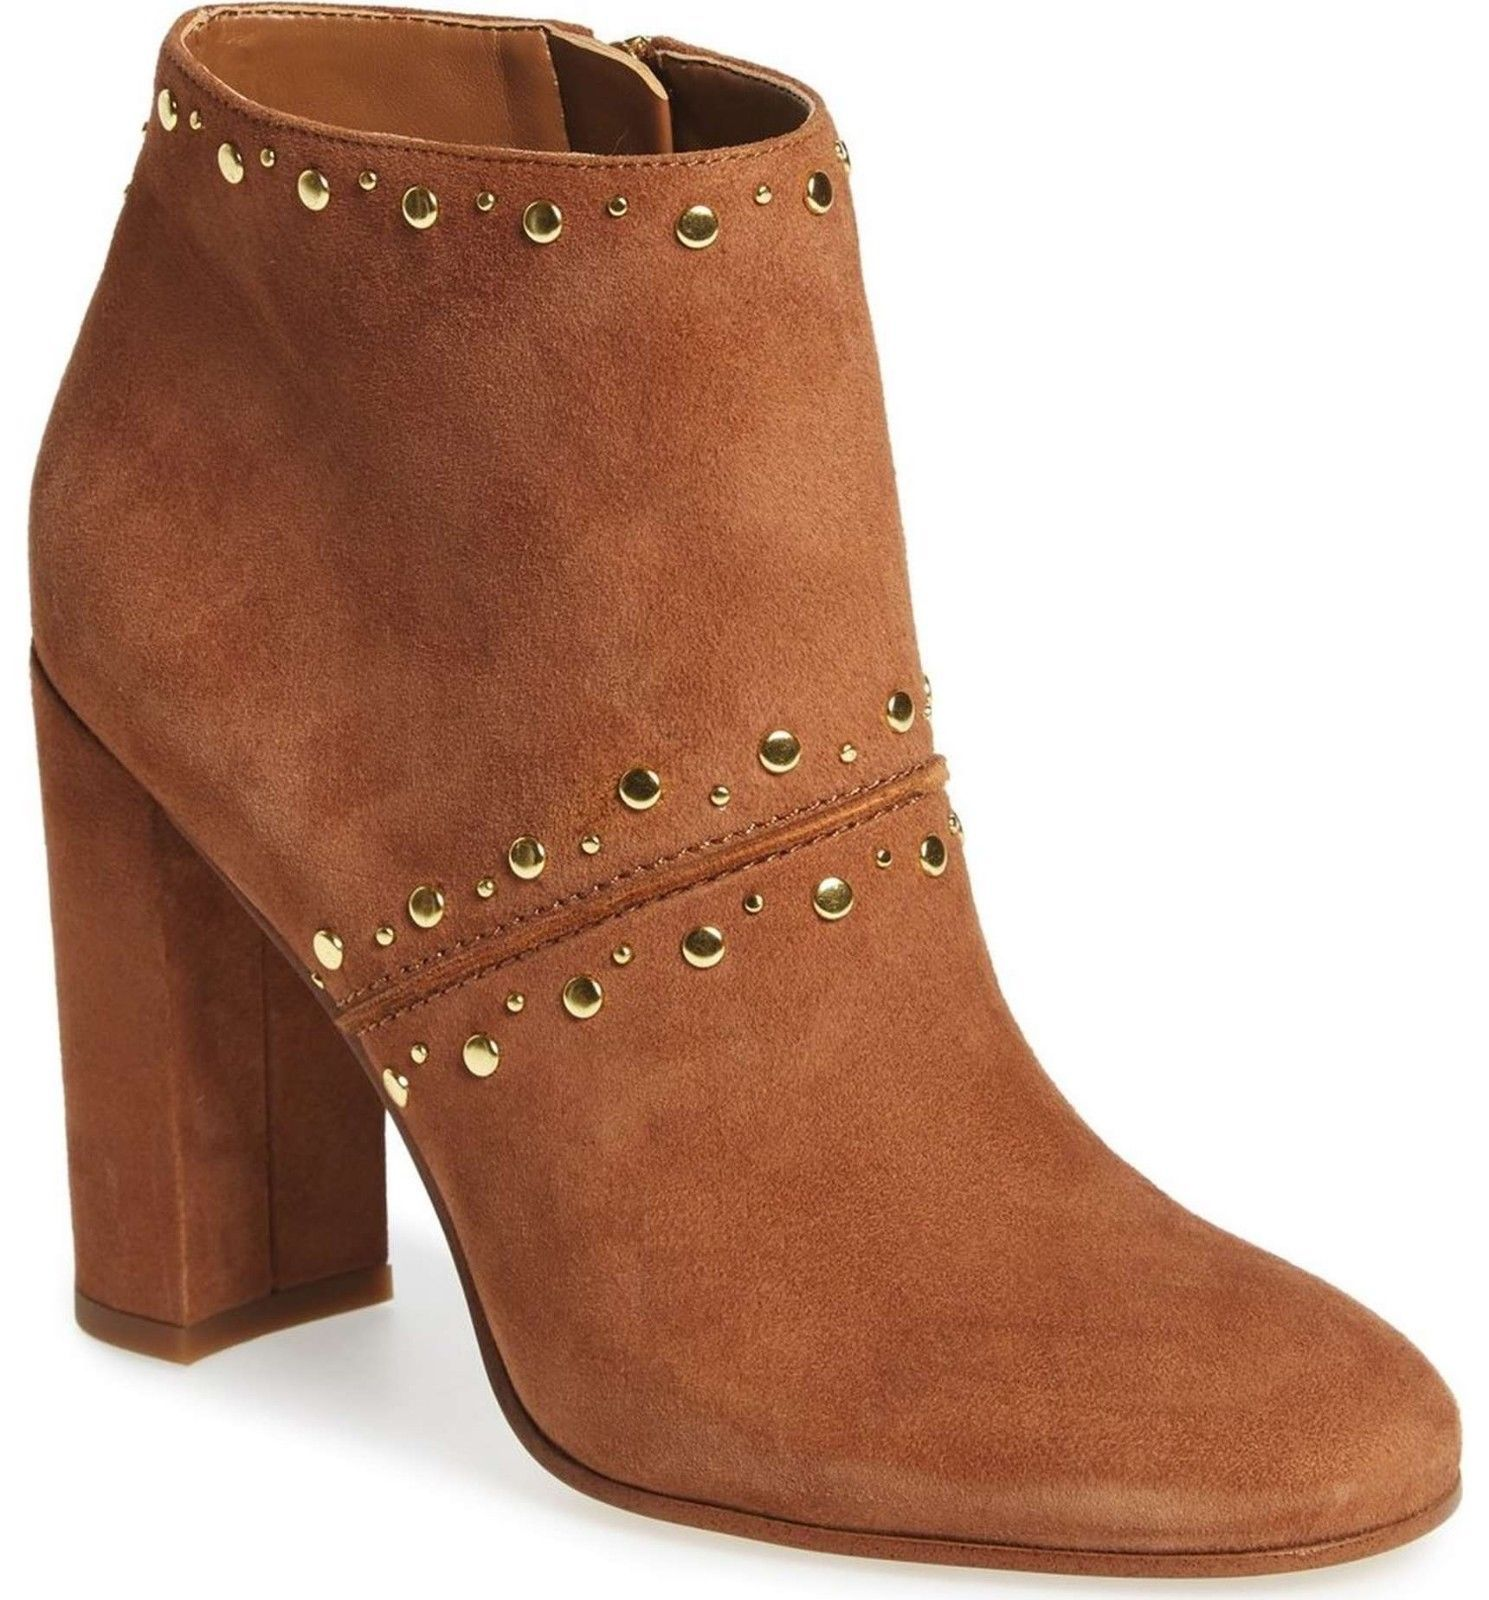 84edeac37 57. 57. Previous. SAM EDELMAN Ankle Booties Chandler Zip Saddle Suede  Heeled Leather Boots 9 M · SAM EDELMAN Ankle ...